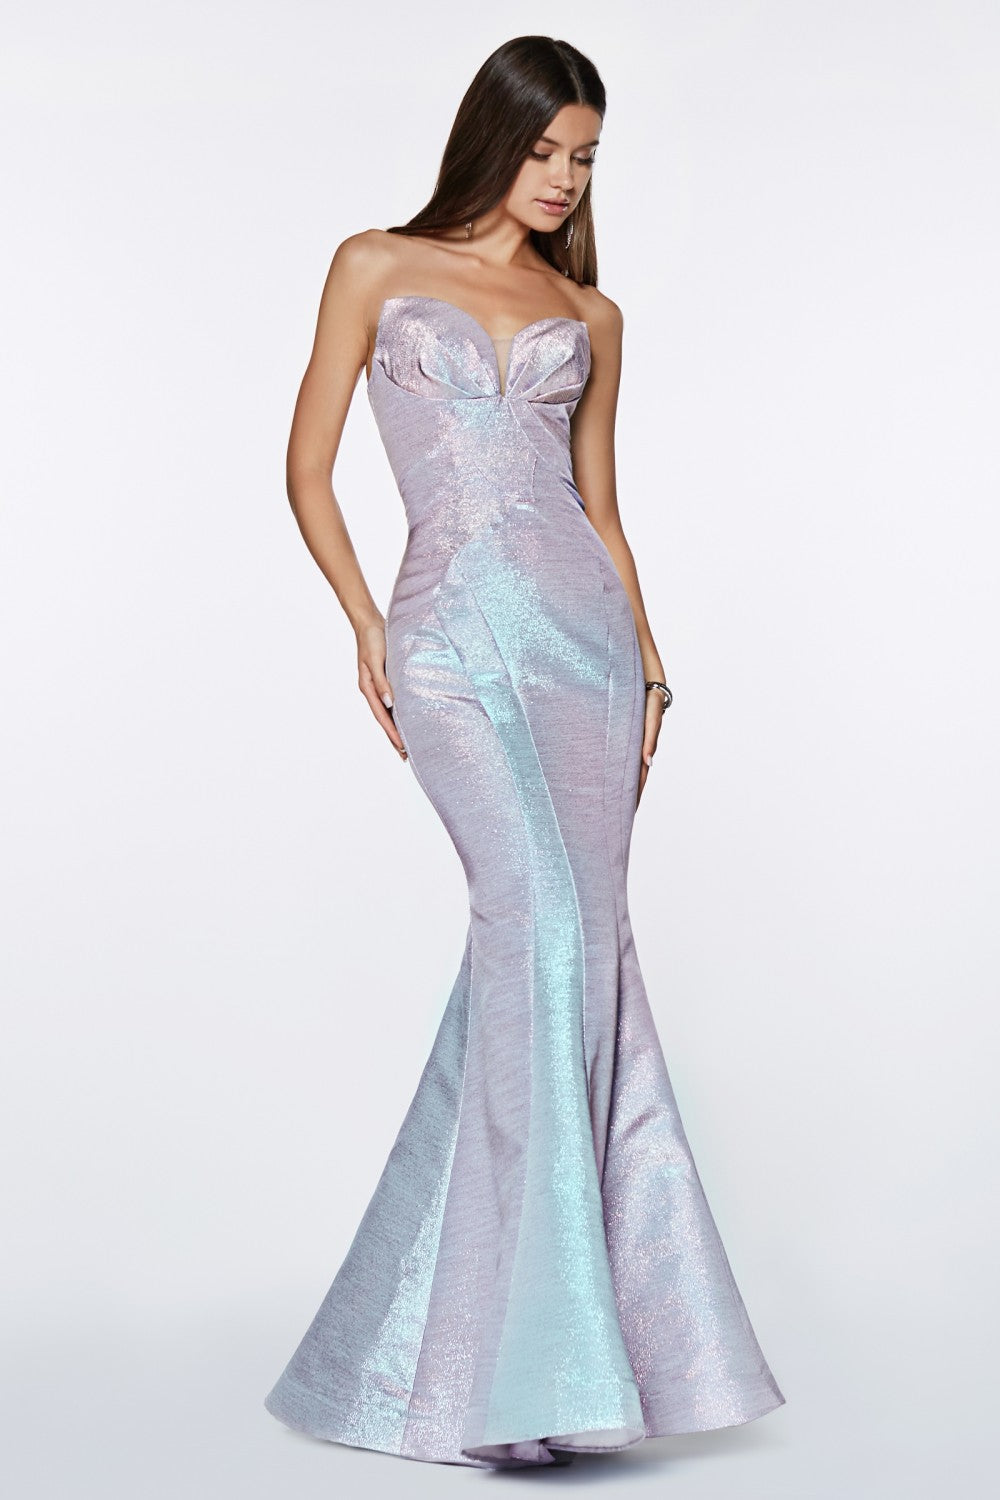 Fitted Strapless Gown With Metallic Iridescent Fabric And Gathered Sweetheart Neckline